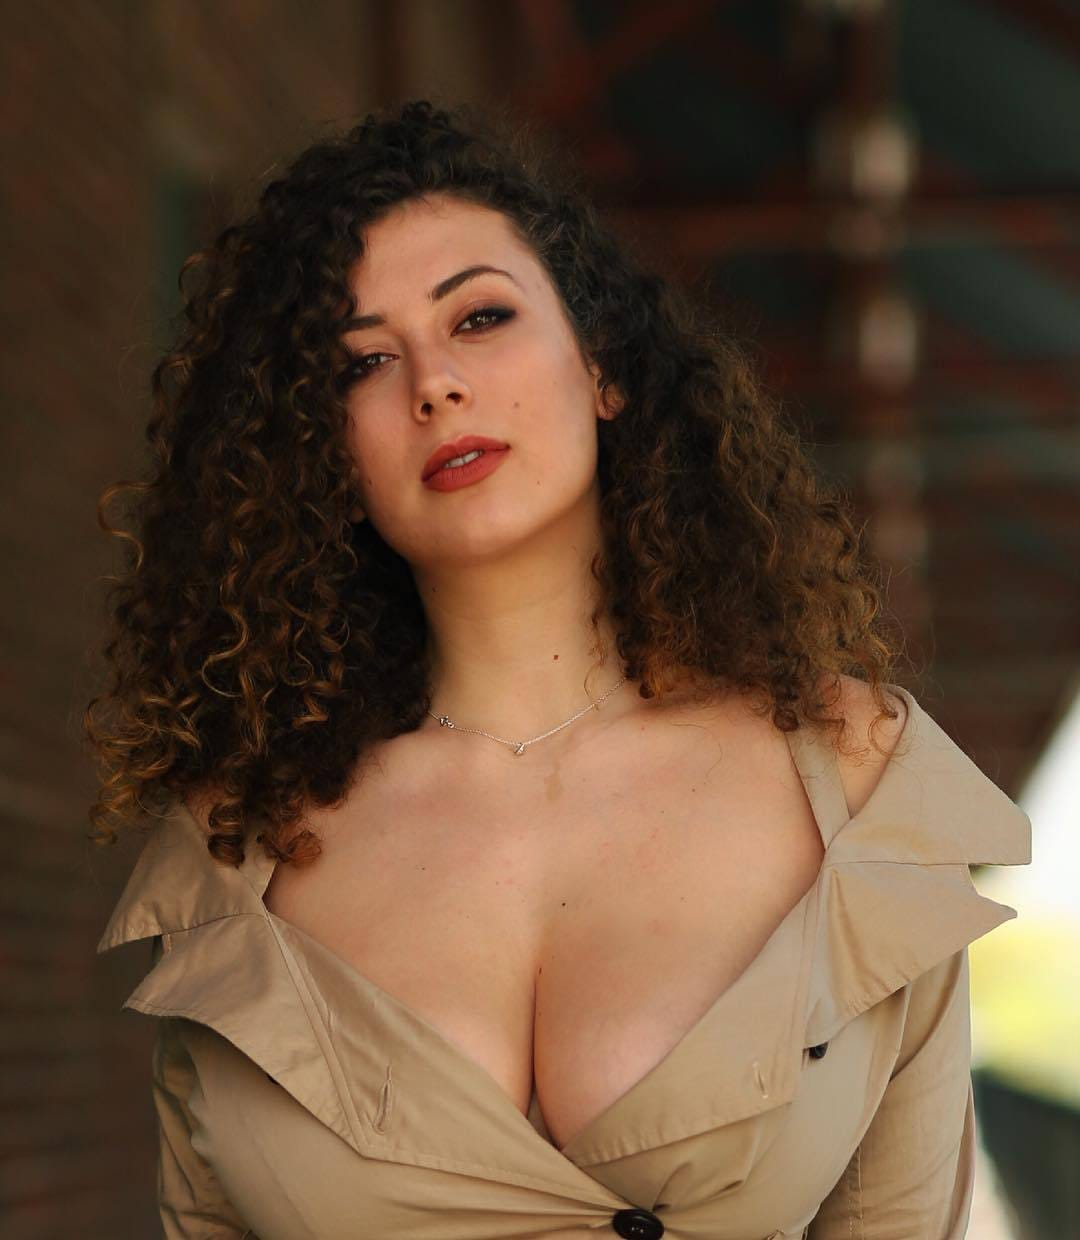 Images Leila Lowfire naked (78 photo), Topless, Hot, Instagram, braless 2020